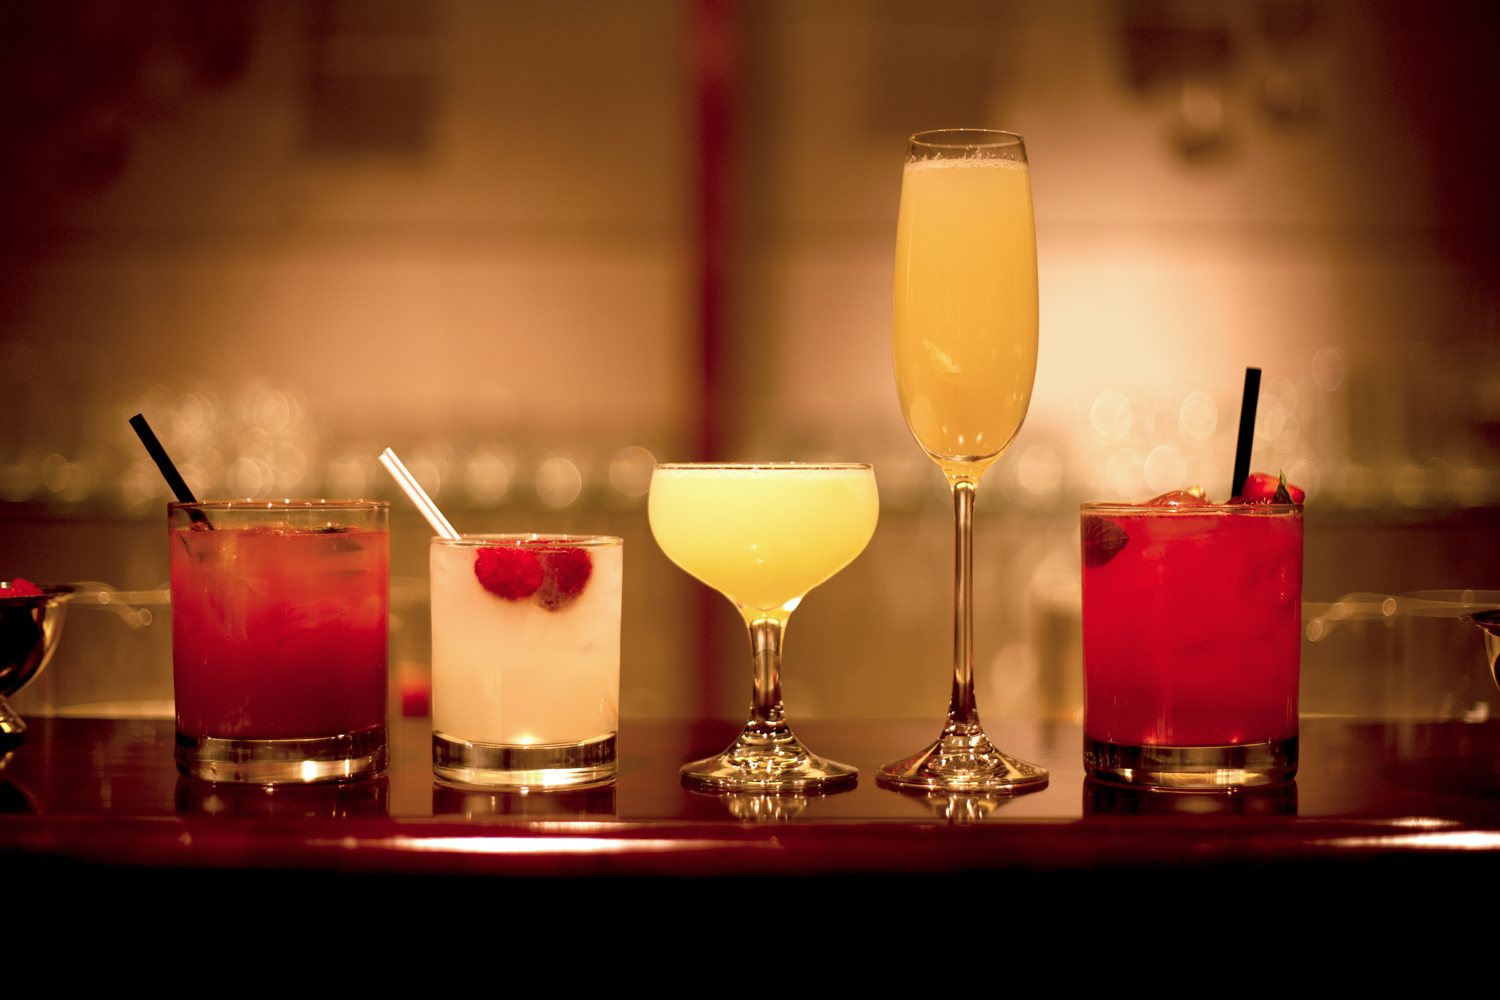 The Gatsby, The Daisy, The Red Berry Mint Julep, Raspberry Gin Rickey, Nick Carraway